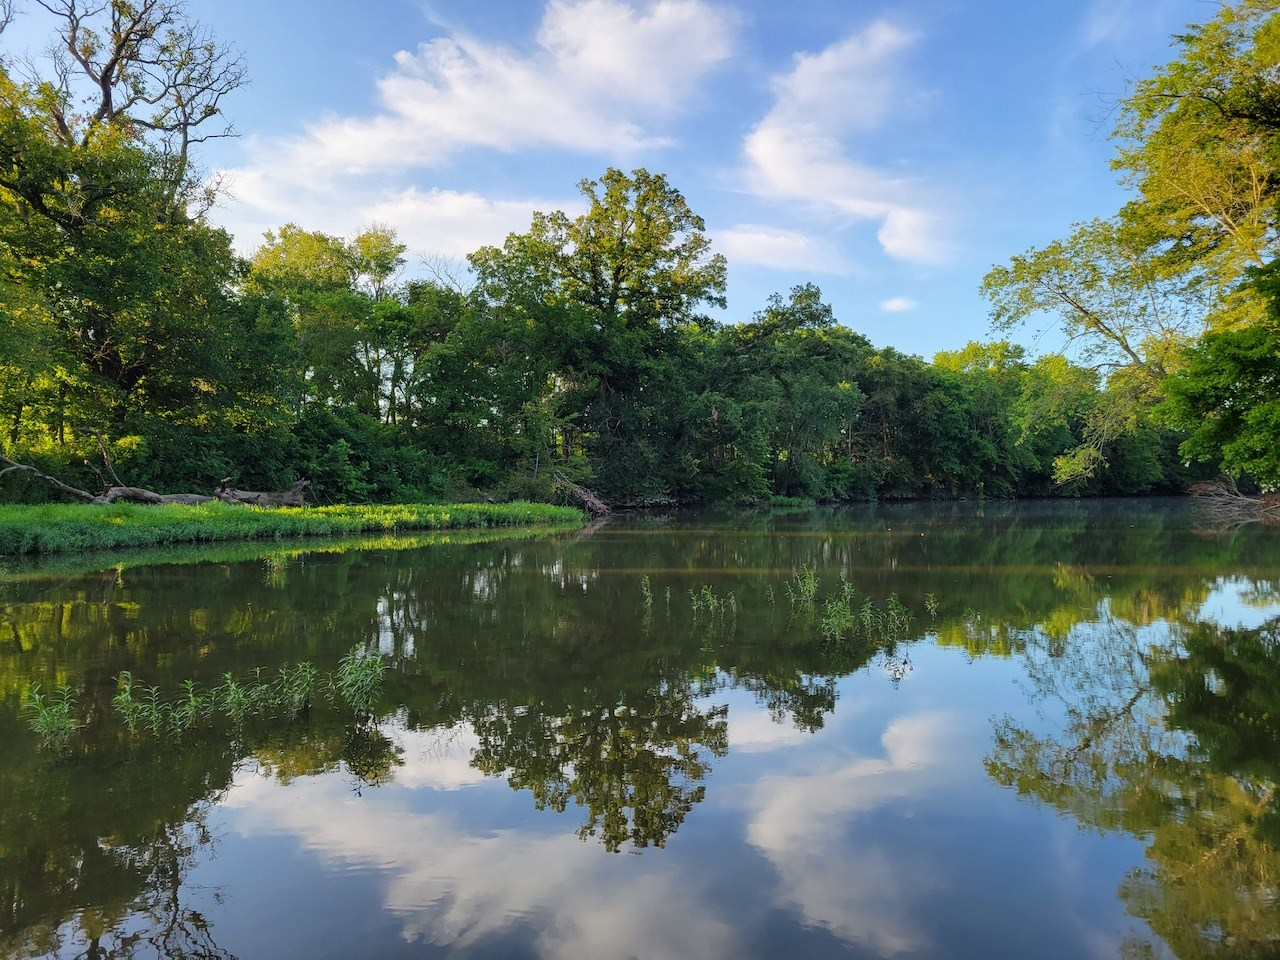 River Ranch for Sale in South Central Missouri